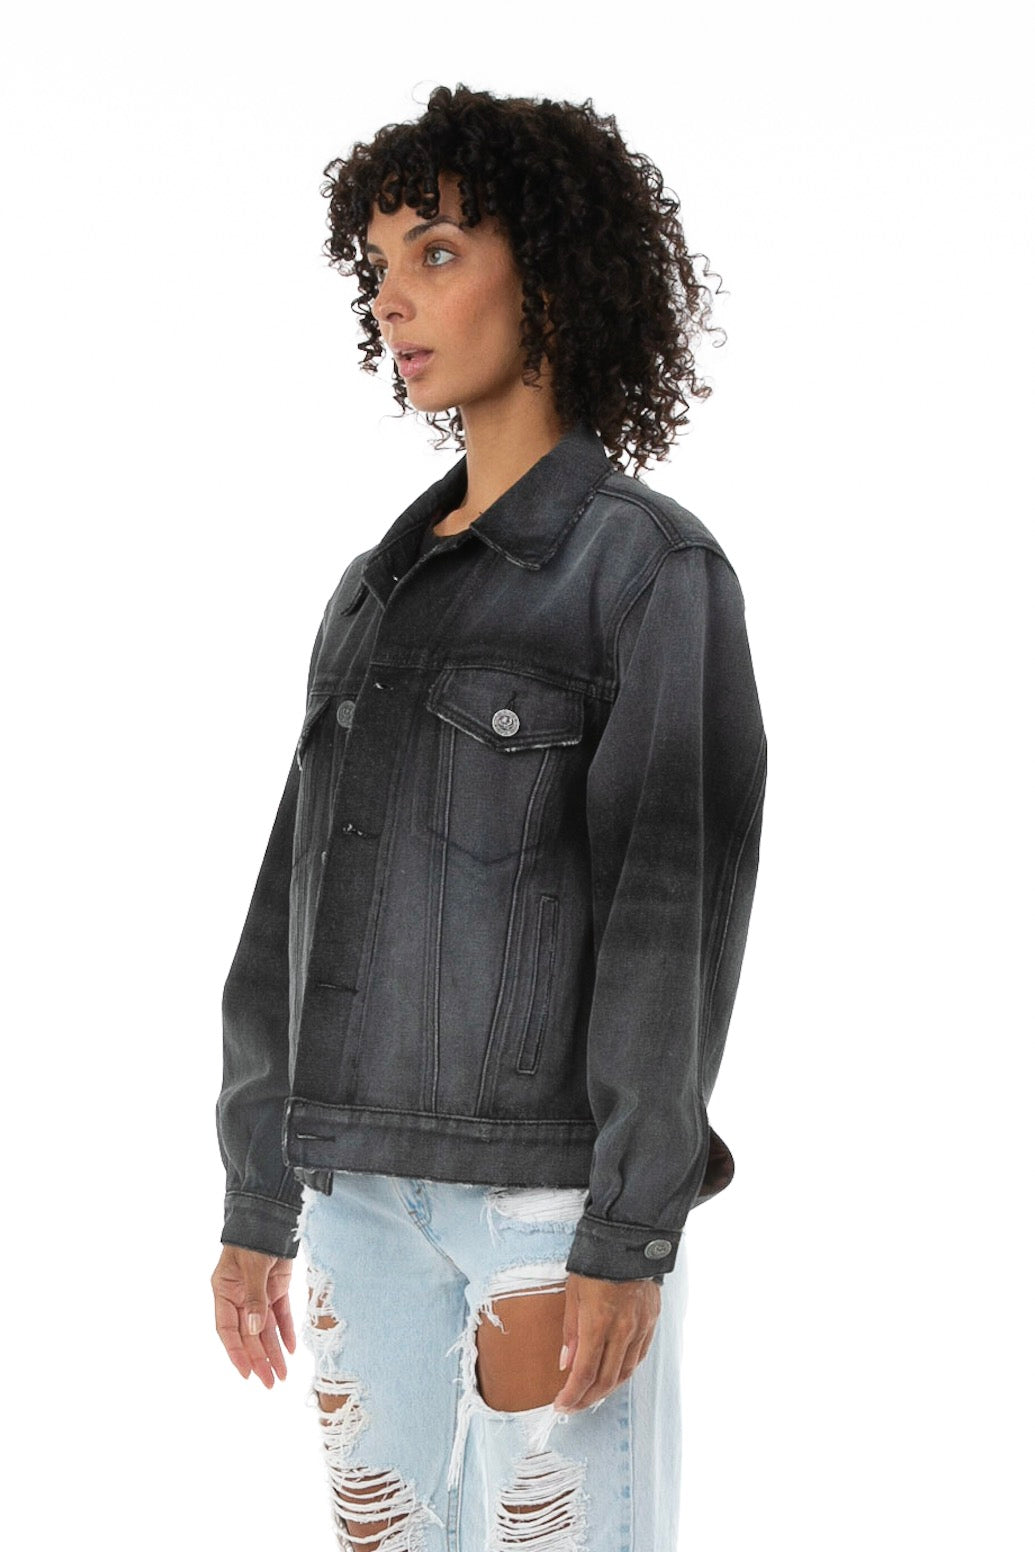 Side of Female model wearing Black Truffle Denim jacket